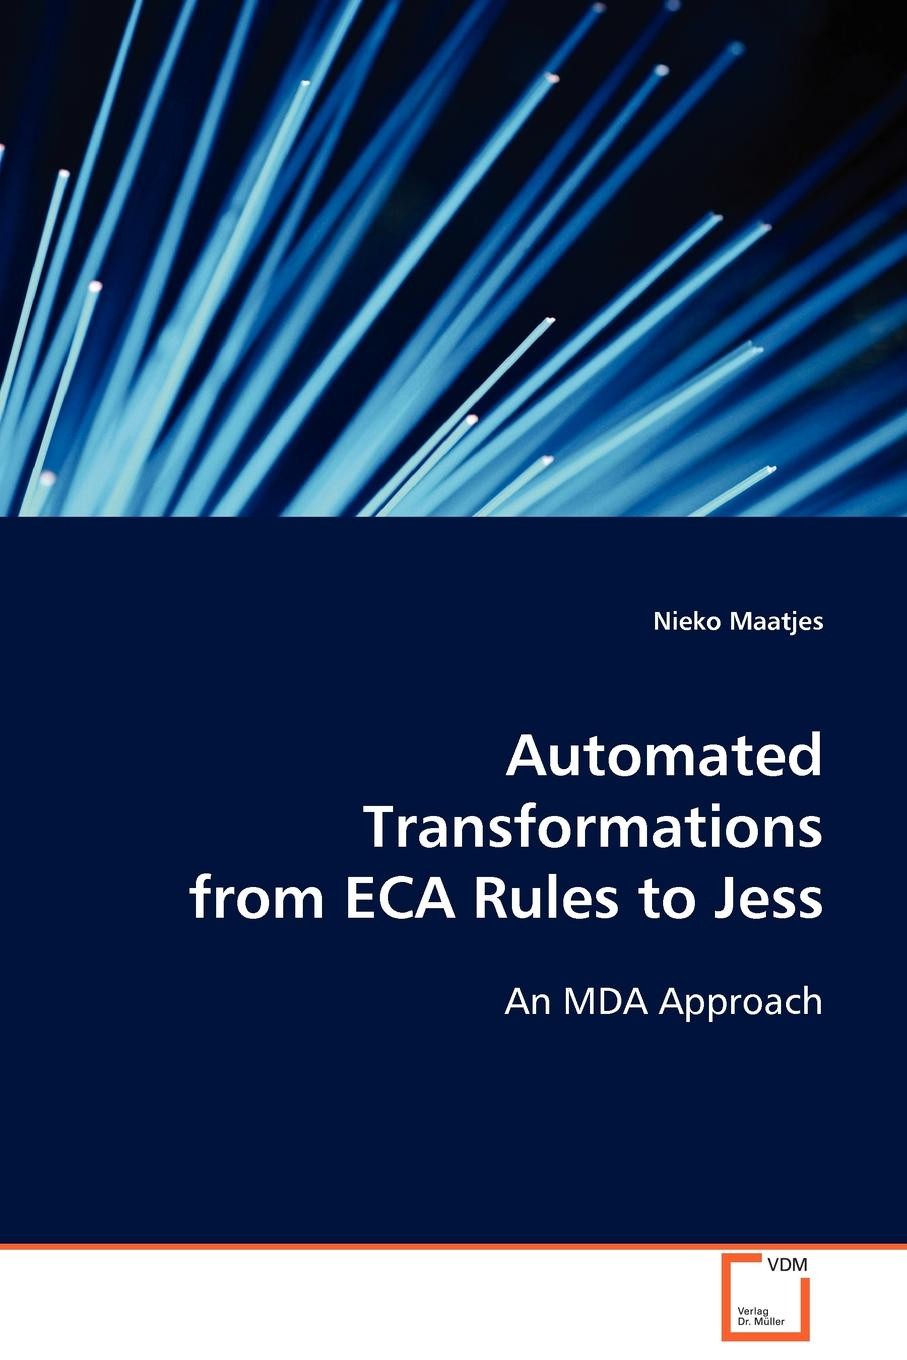 Nieko Maatjes Automated Transformations from ECA Rules to Jess